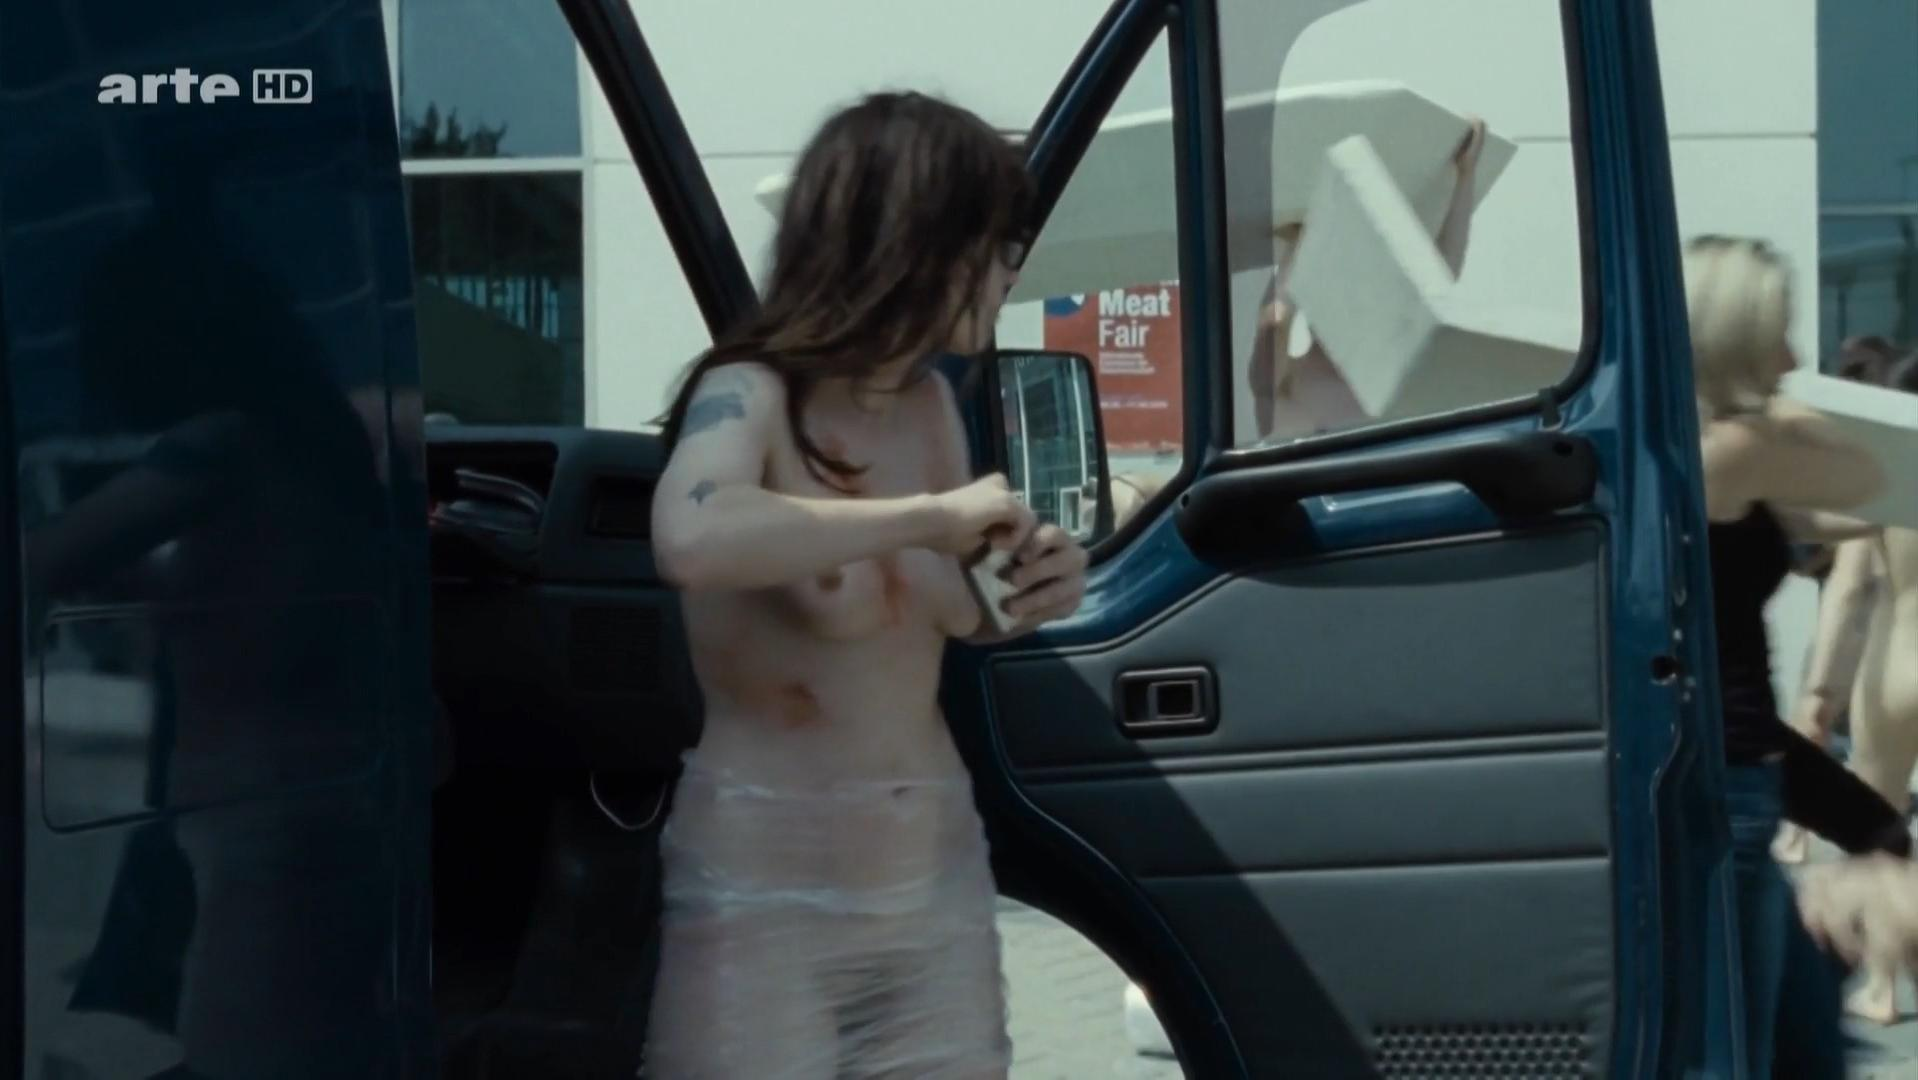 Adele exarchopoulos nude boobs and butt in eperdument - 1 part 2